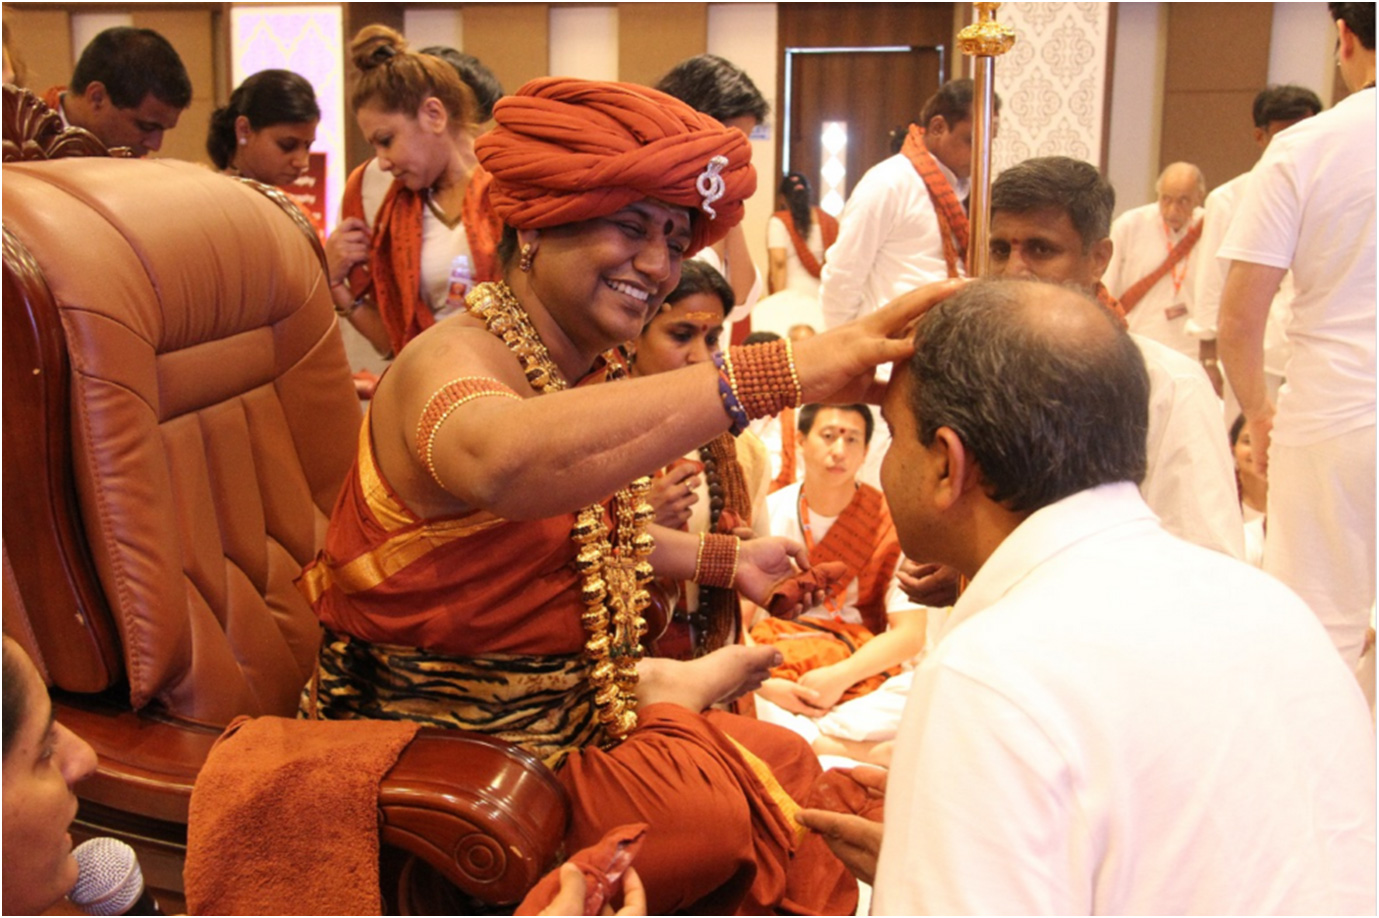 Swamiji personally initiating devotees into truths about life and mystical experiences